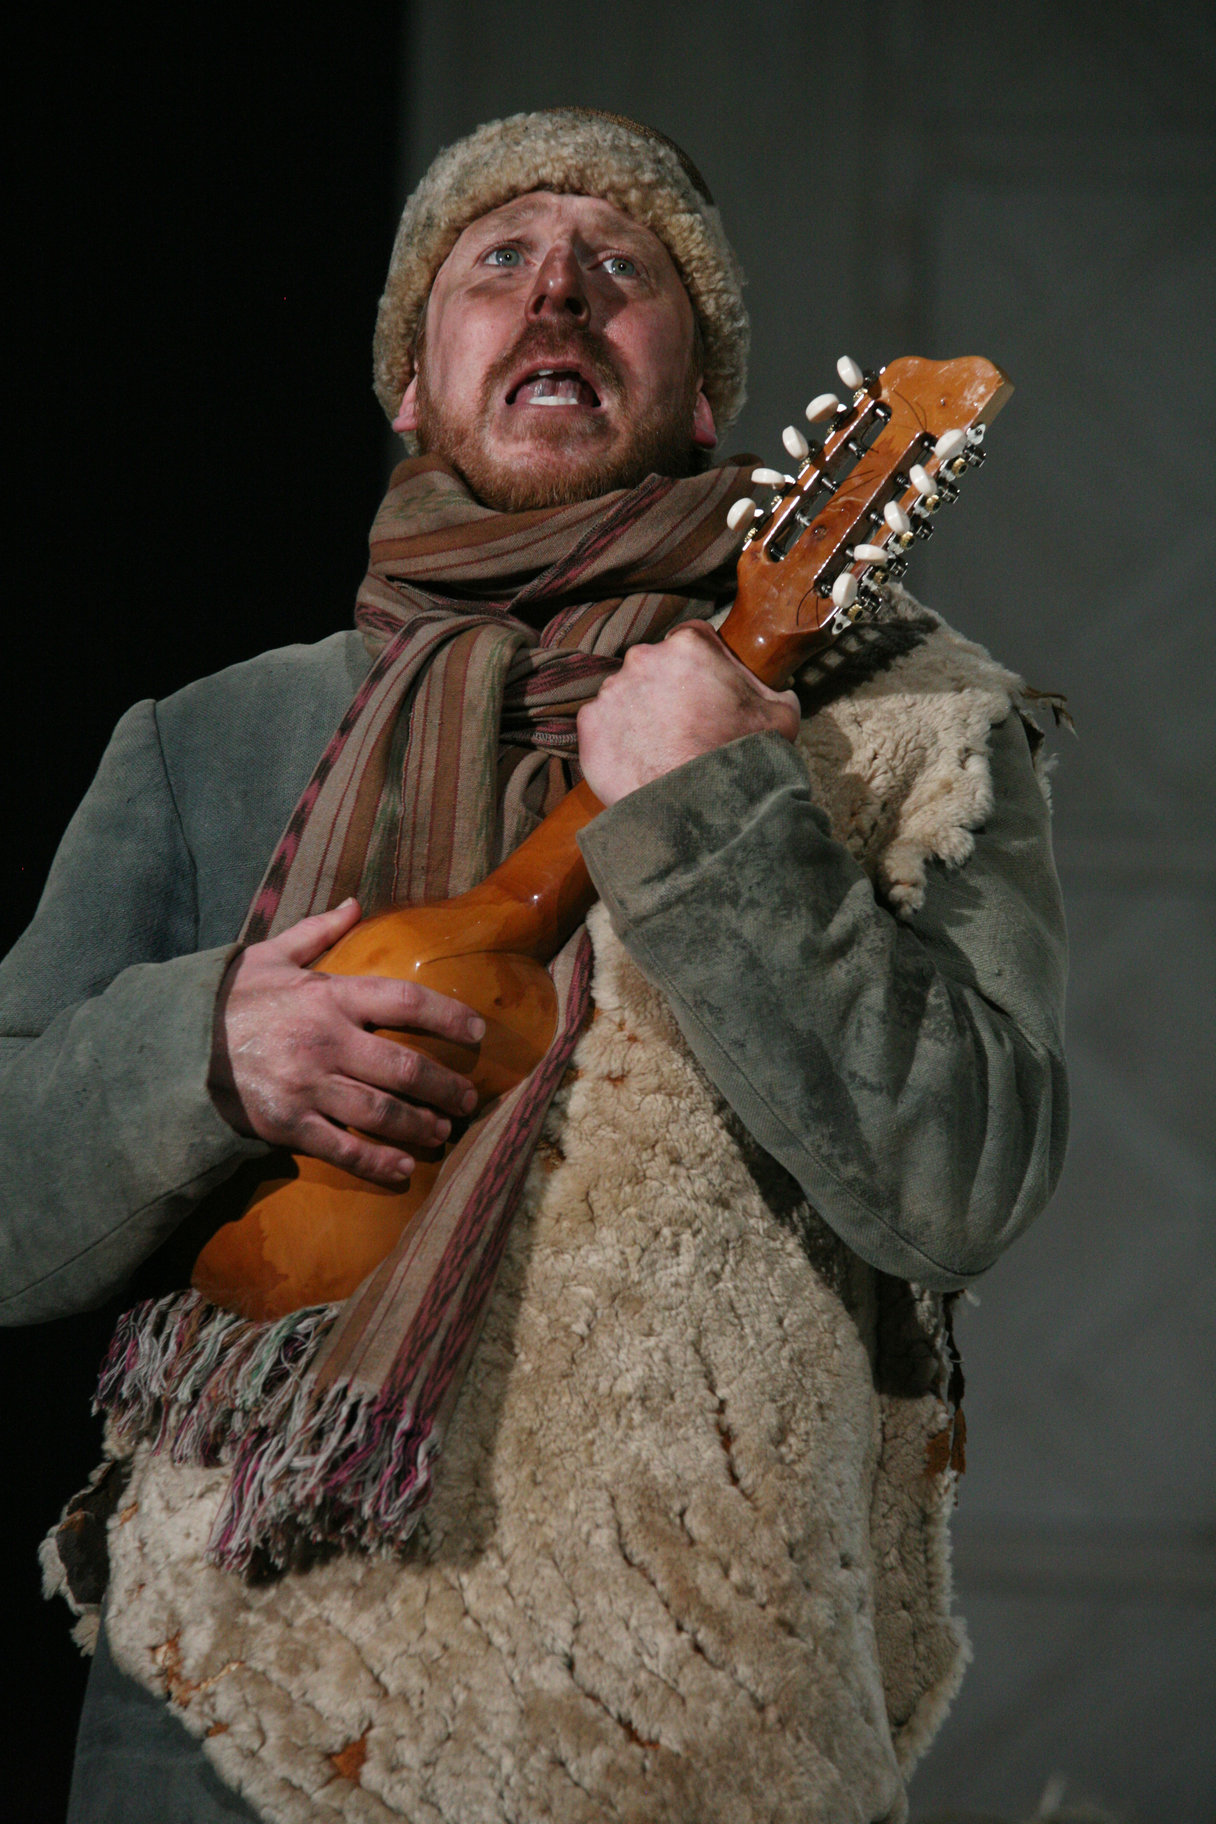 Silvius with a dirty face and a mandolin.